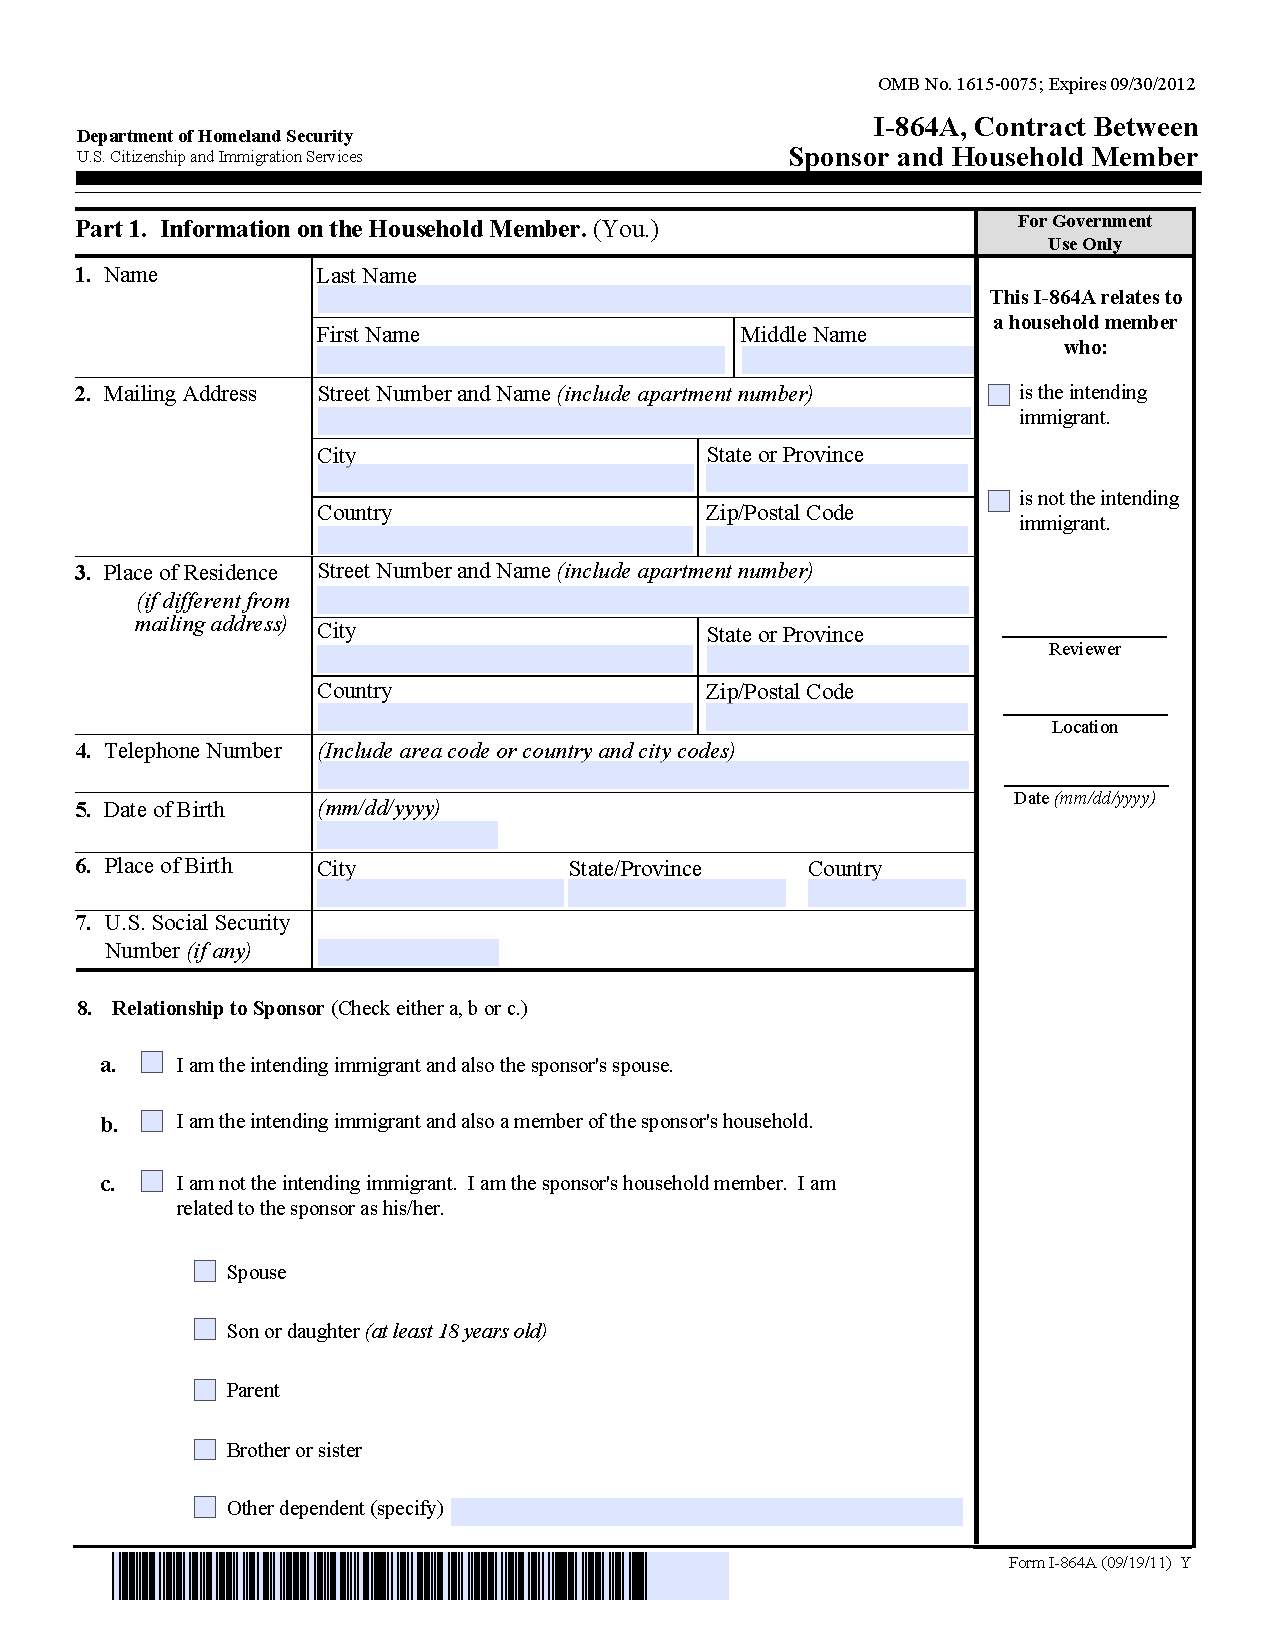 Form I-864A Contract Between Sponsor and Household Member